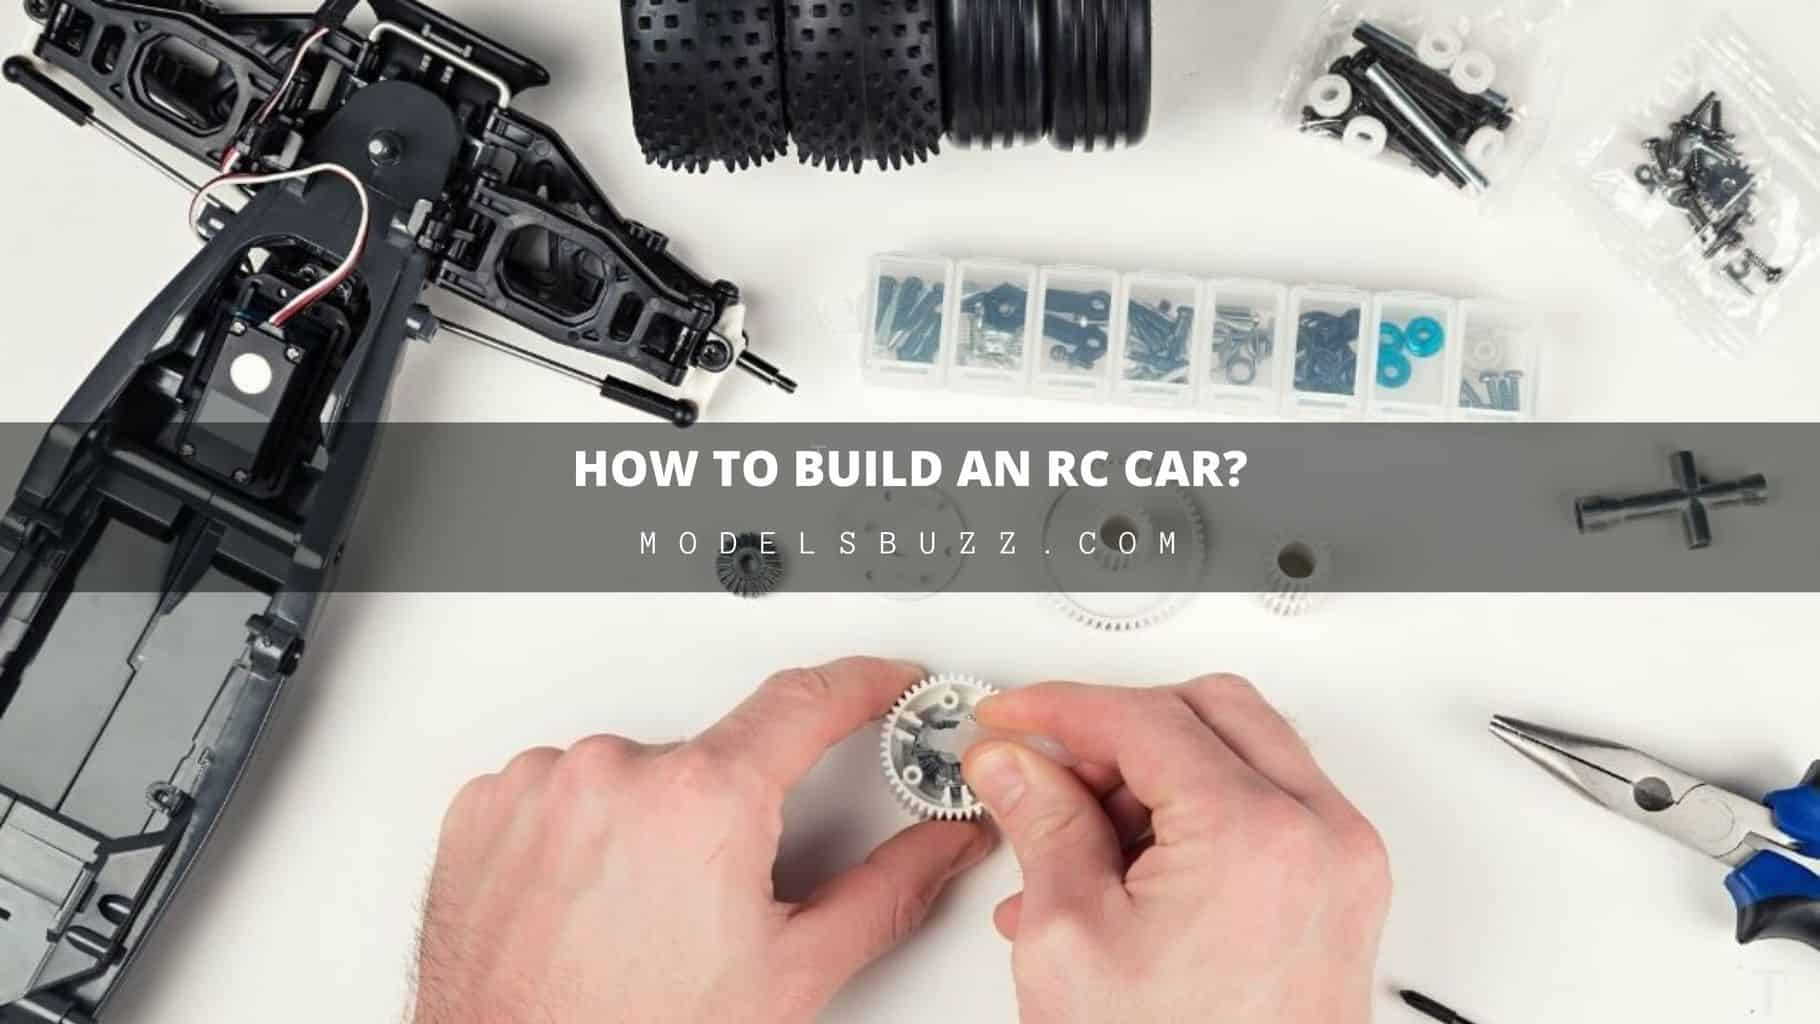 ild an RC Car From Scratch